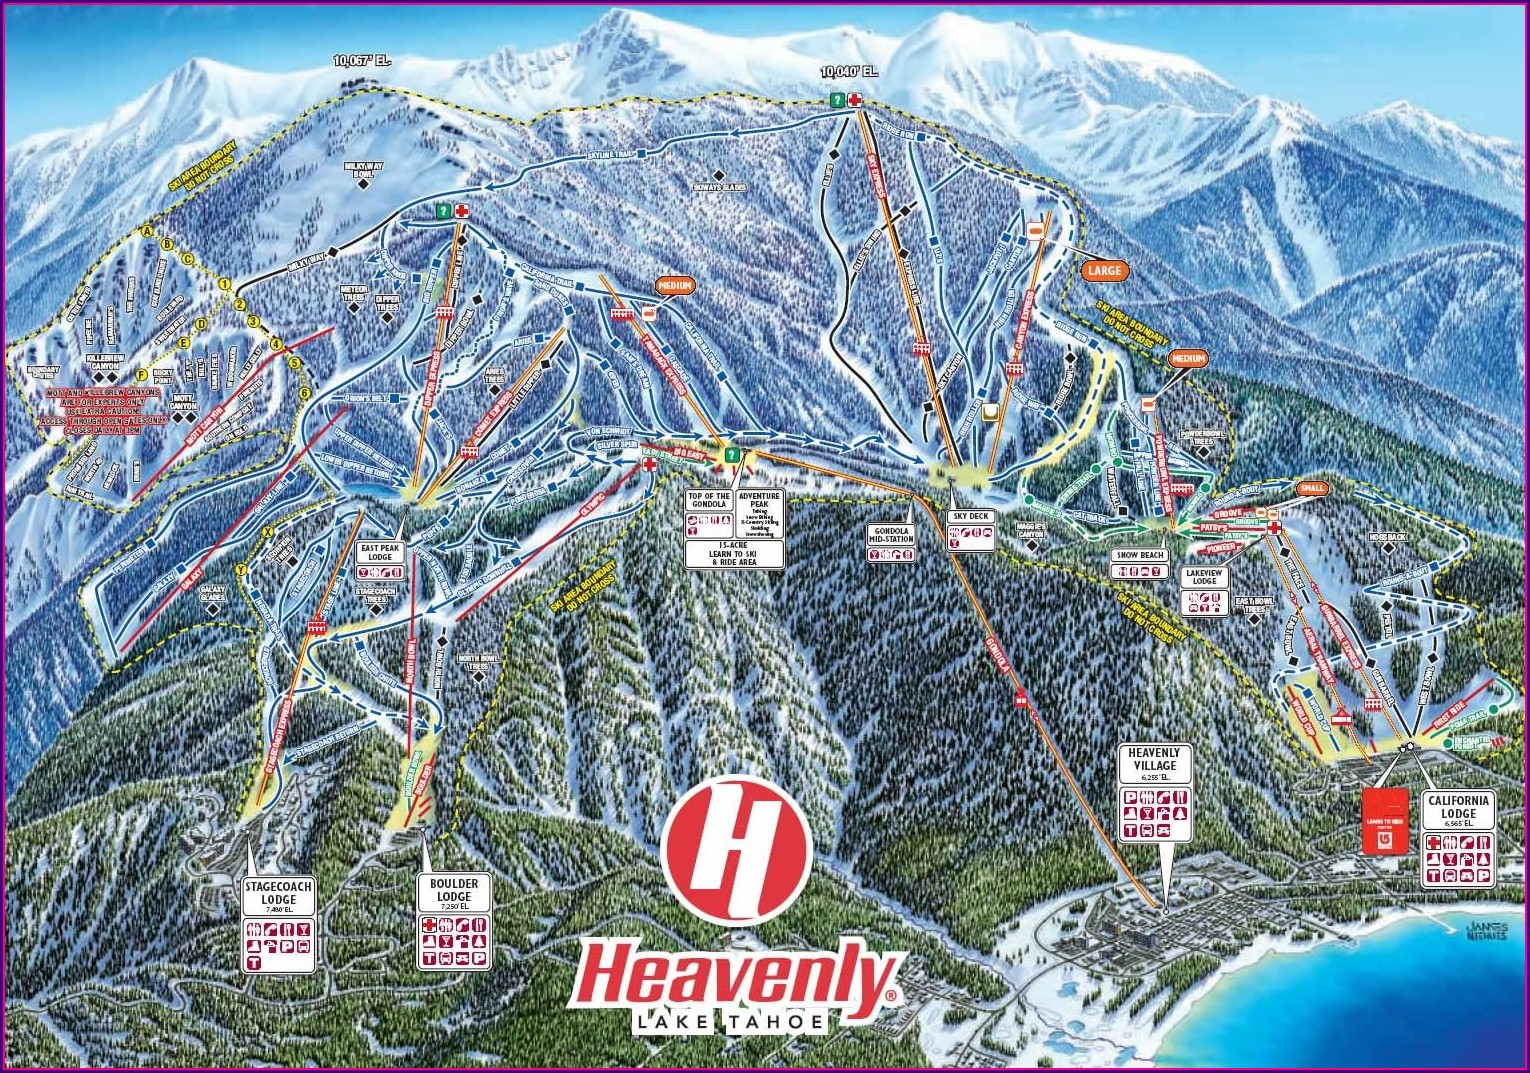 Heavenly Ski Resort Map